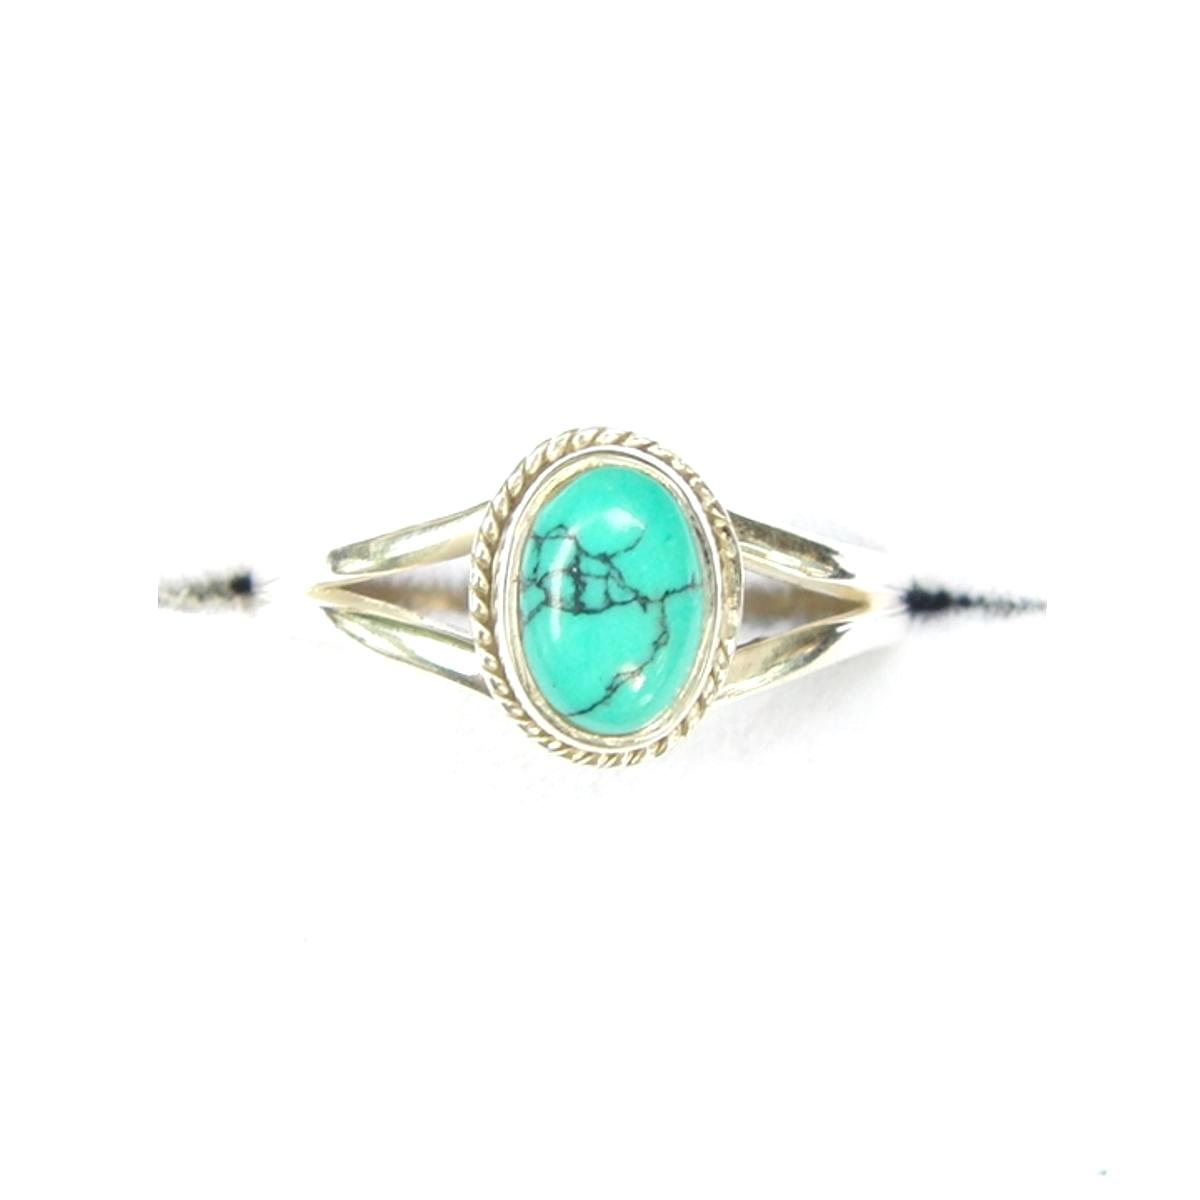 Turquoise Dainty Ring